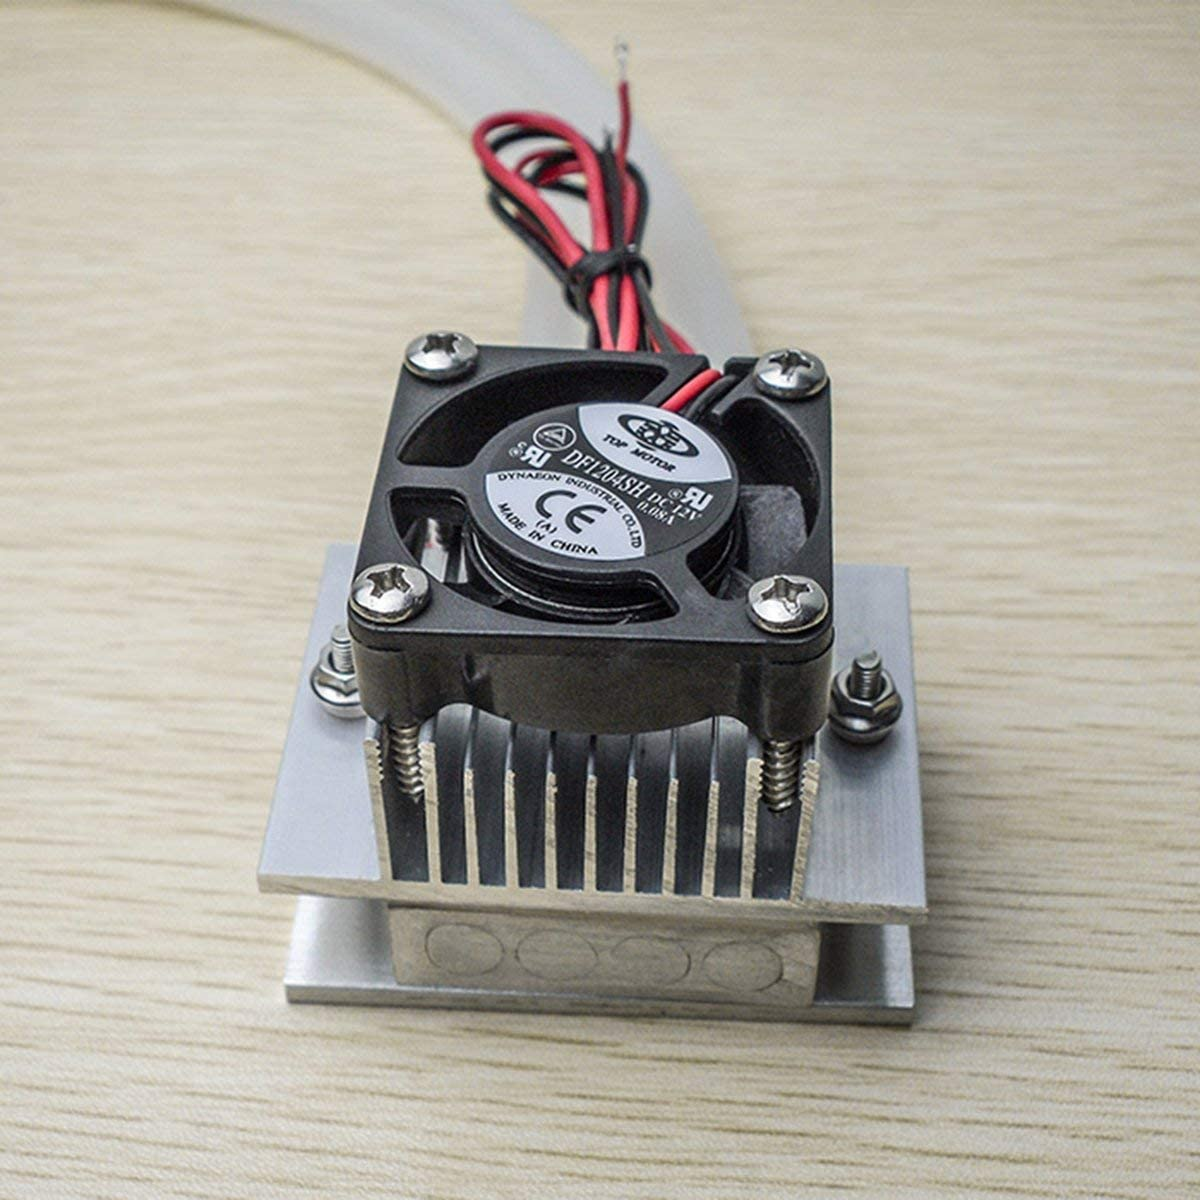 70W DIY Cooling Kits Thermoelectric Peltier Refrigeration Cooling System Water Cooling Fan TEC1-12706 Cooler